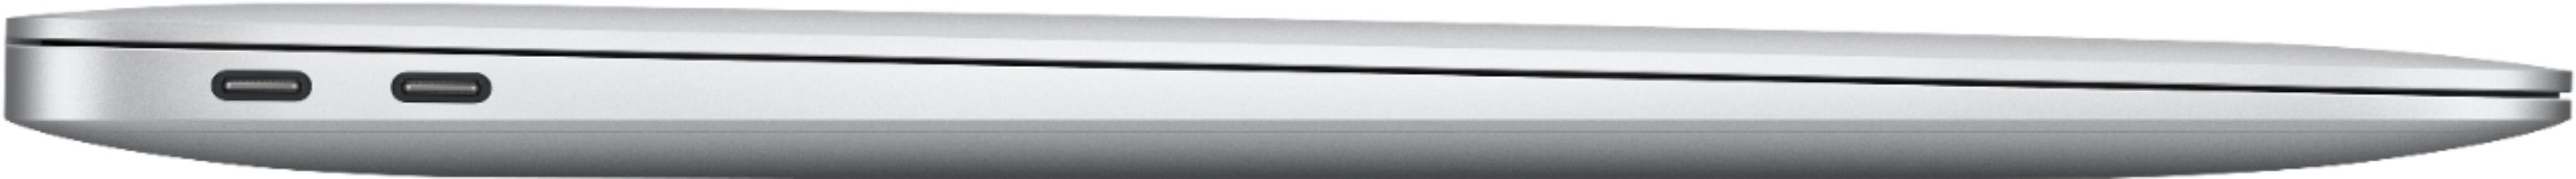 """Alt View Zoom 14. MacBook Air 13.3"""" Laptop - Apple M1 chip - 8GB Memory - 256GB SSD (Latest Model) - Silver."""